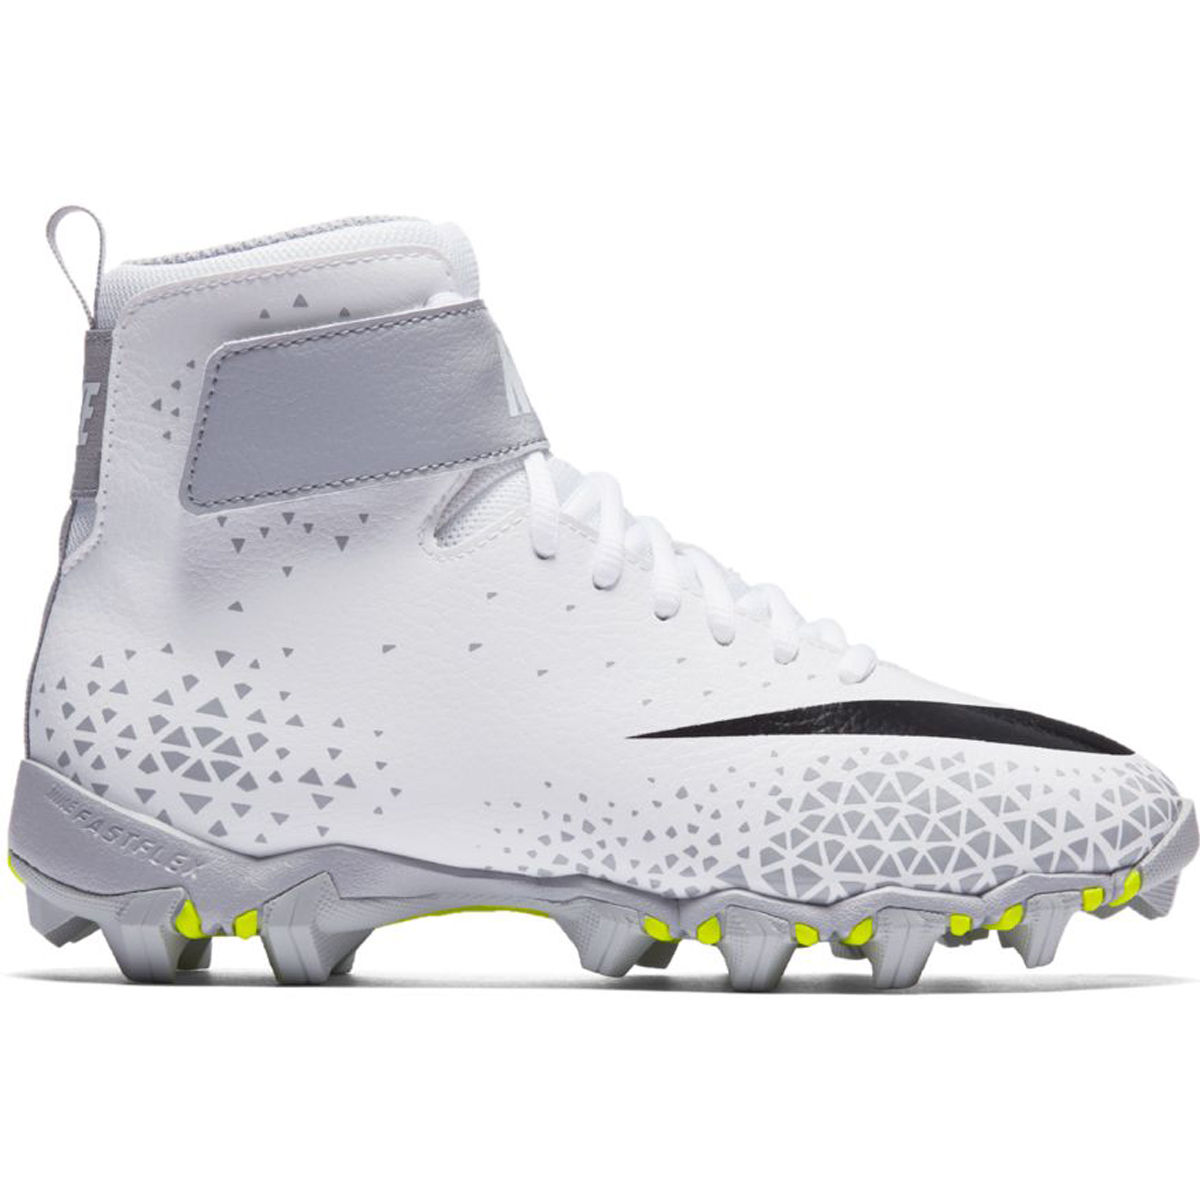 Nike Force Shark Boys Football Cleat